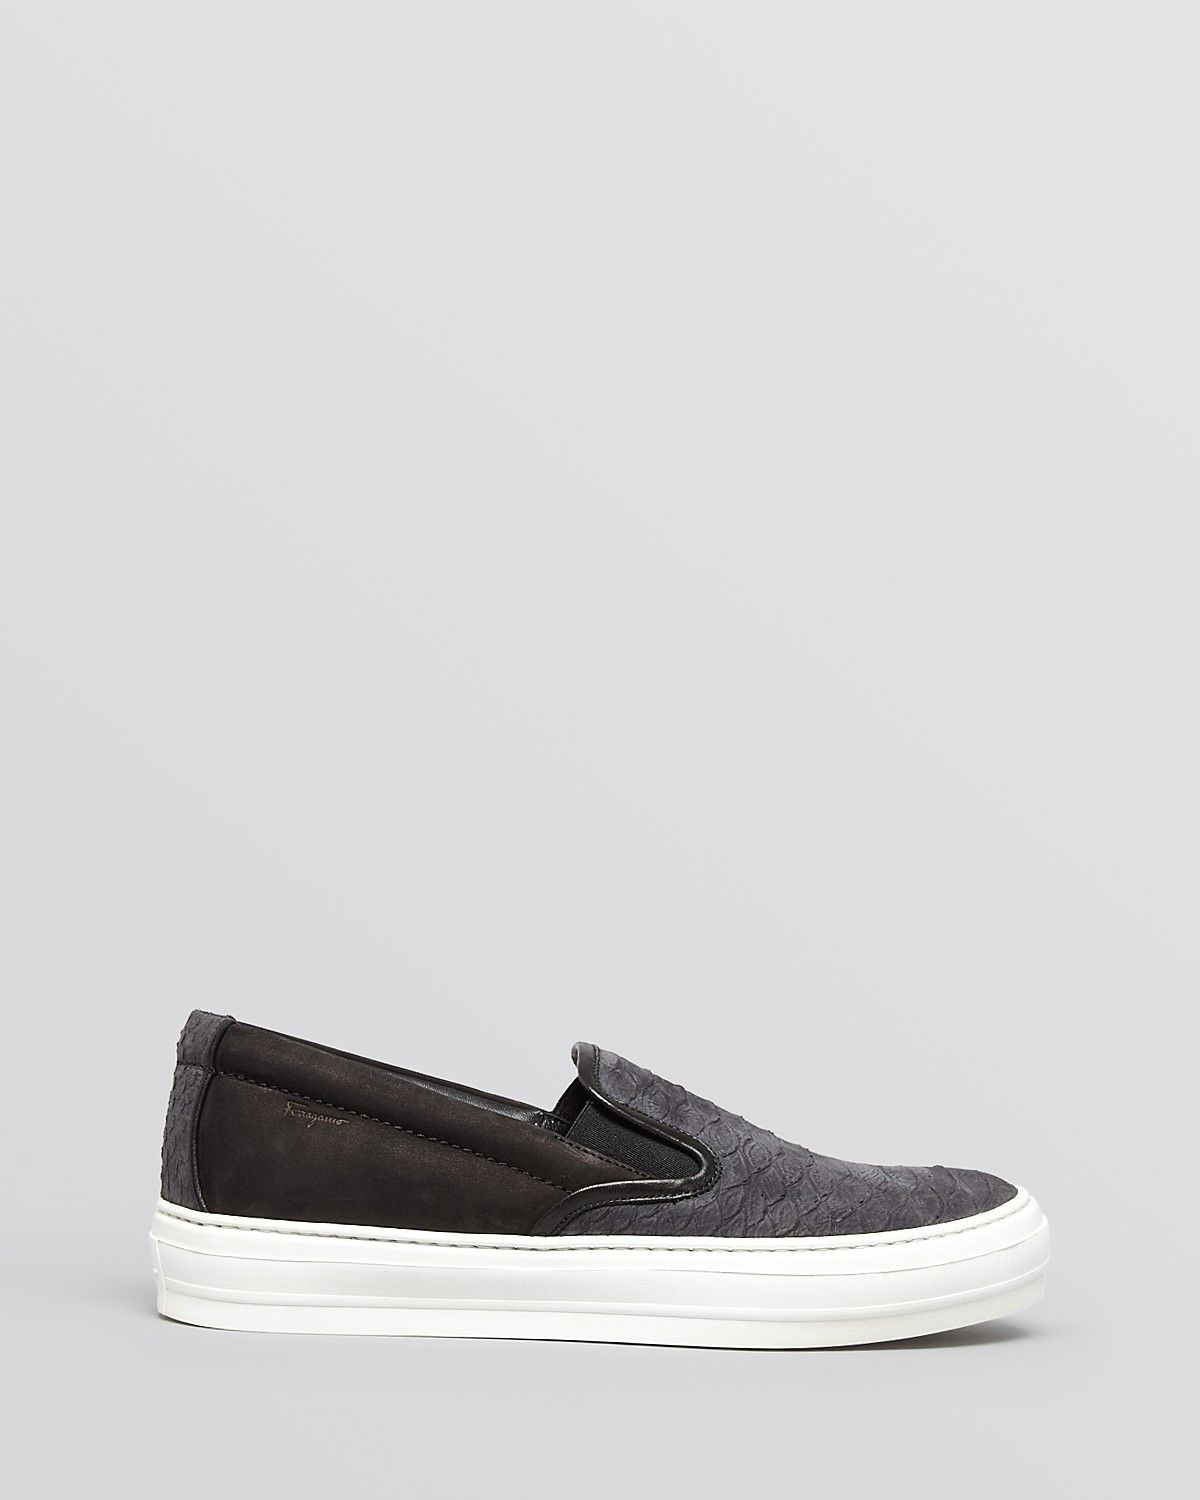 2017 New Style Womens Salvatore Ferragamo 'pacau' Sneakers Special Sales